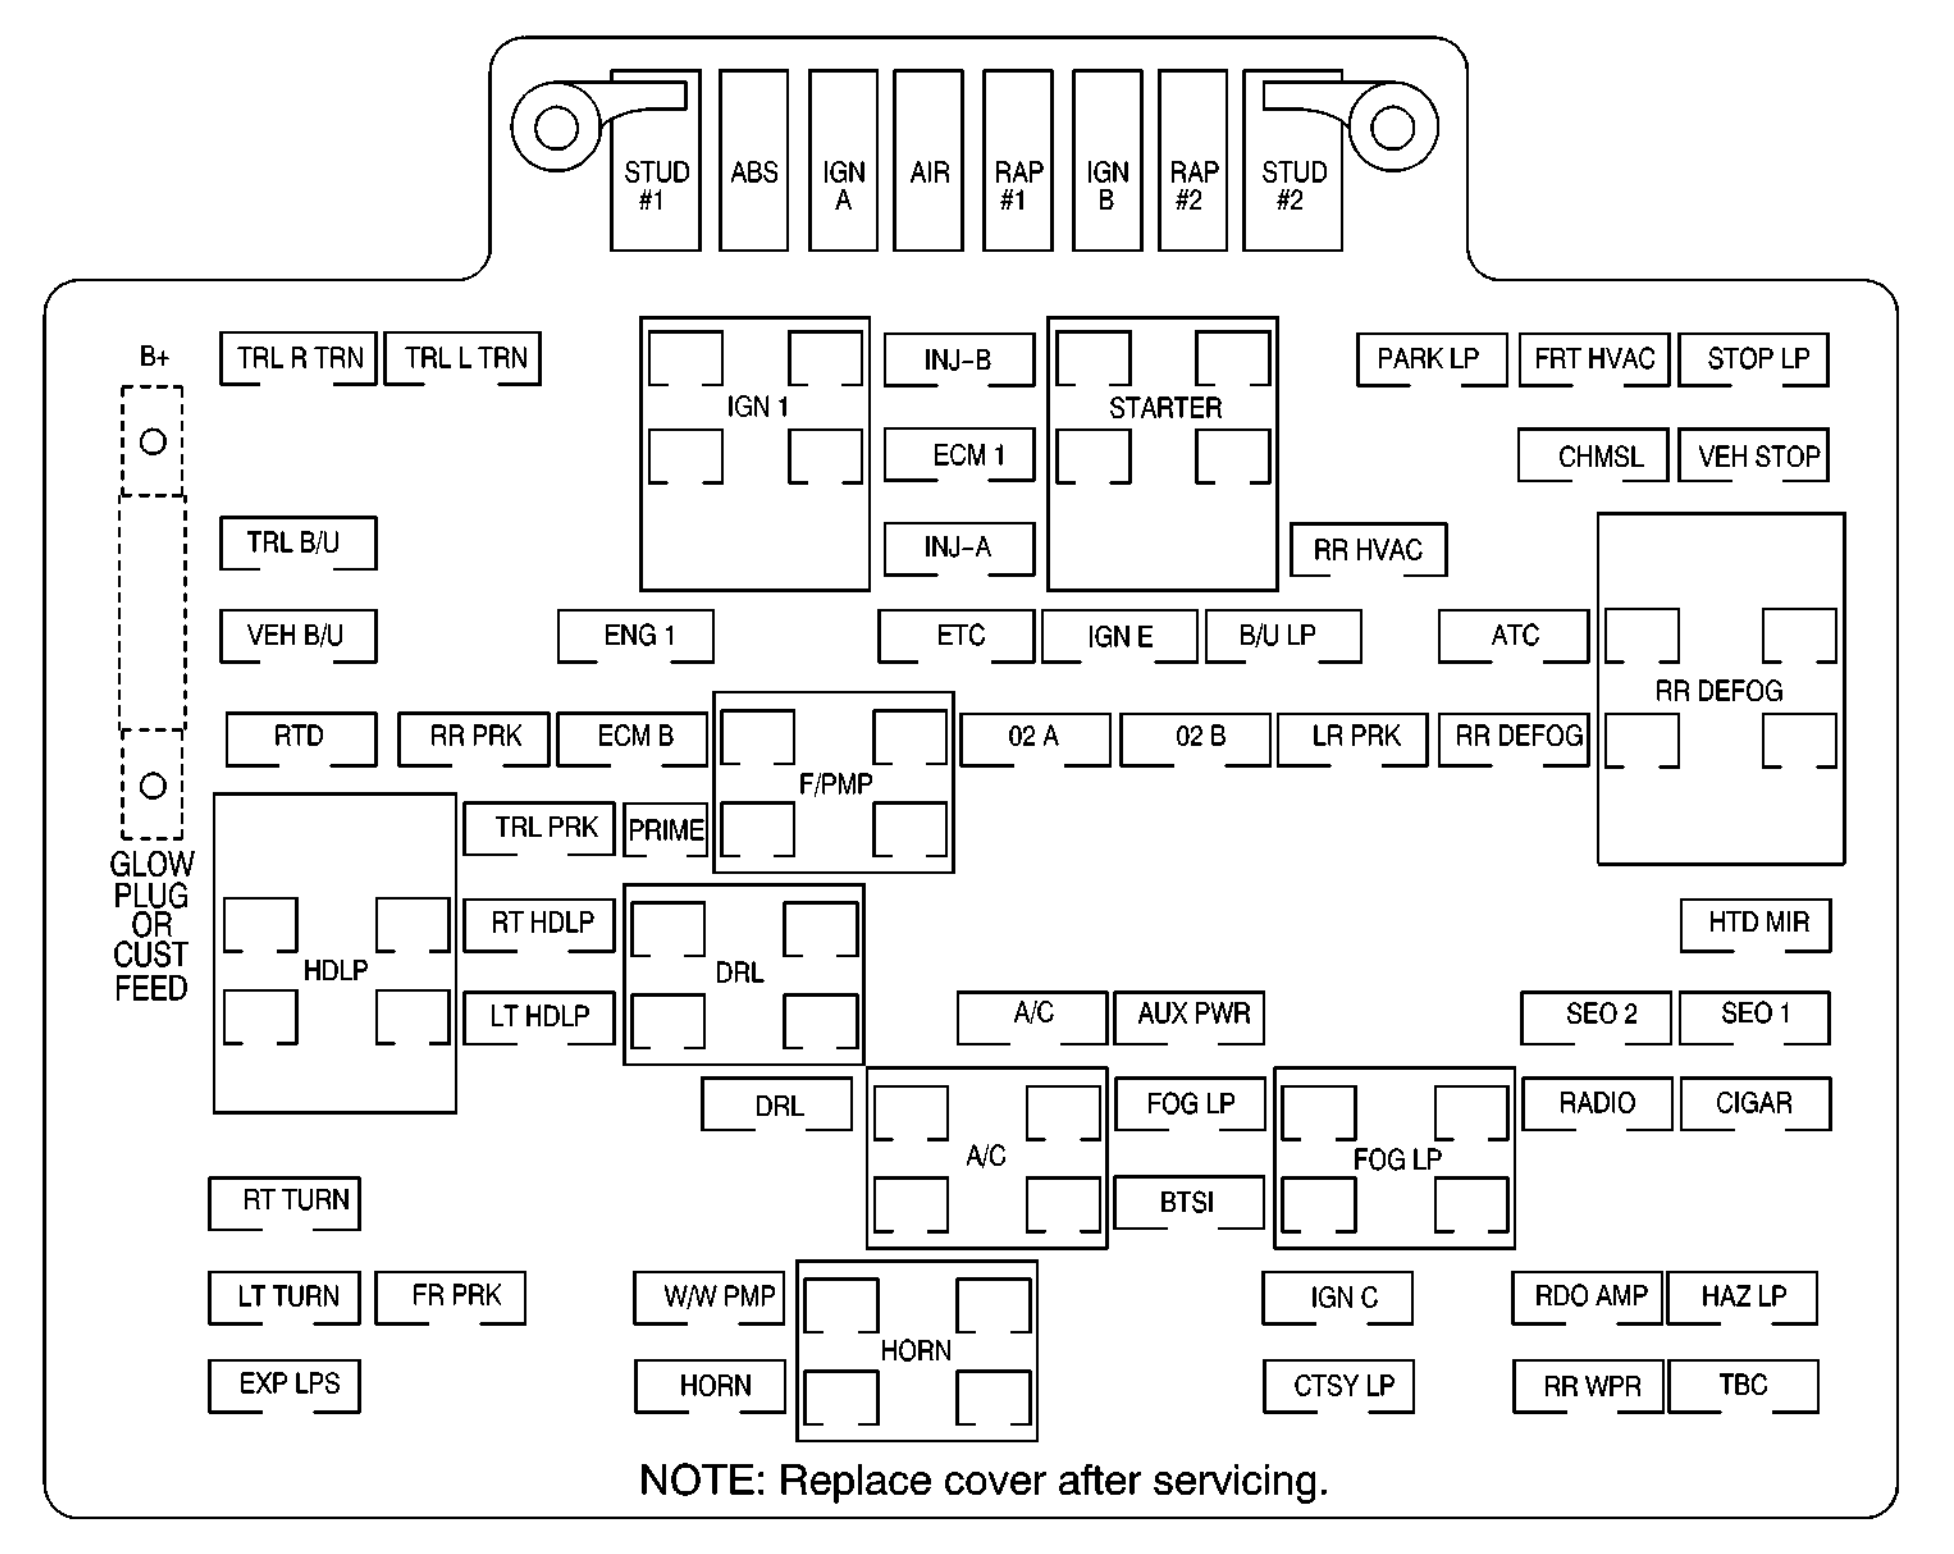 2001 Tahoe Fuse Box Diagram Just Another Wiring Data For 2002 Volkswagen Jetta Schemes Gm 2000